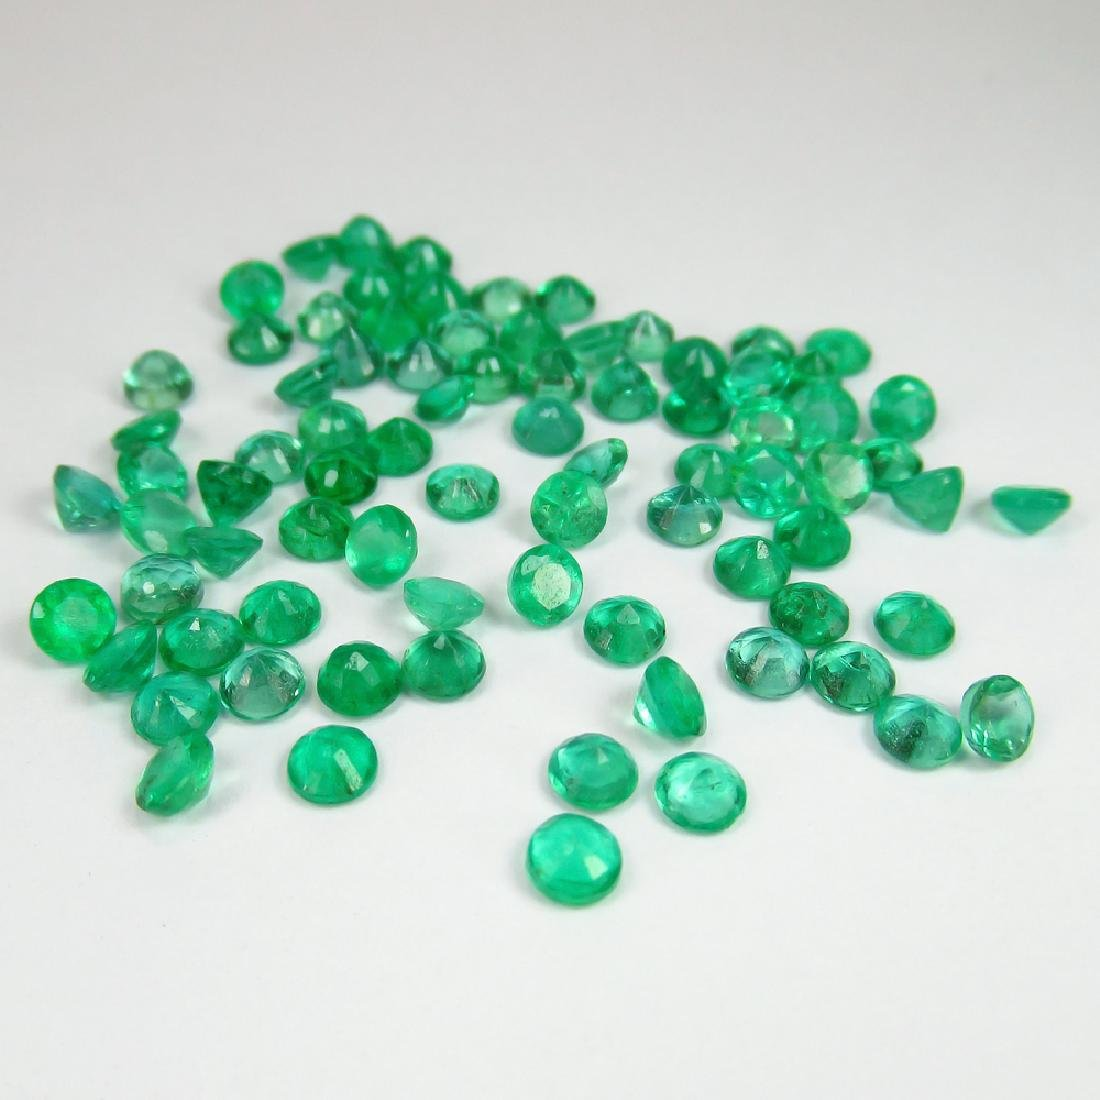 14.66 Ctw Natural 81 Calibrate Emerald 3.5 mm Round